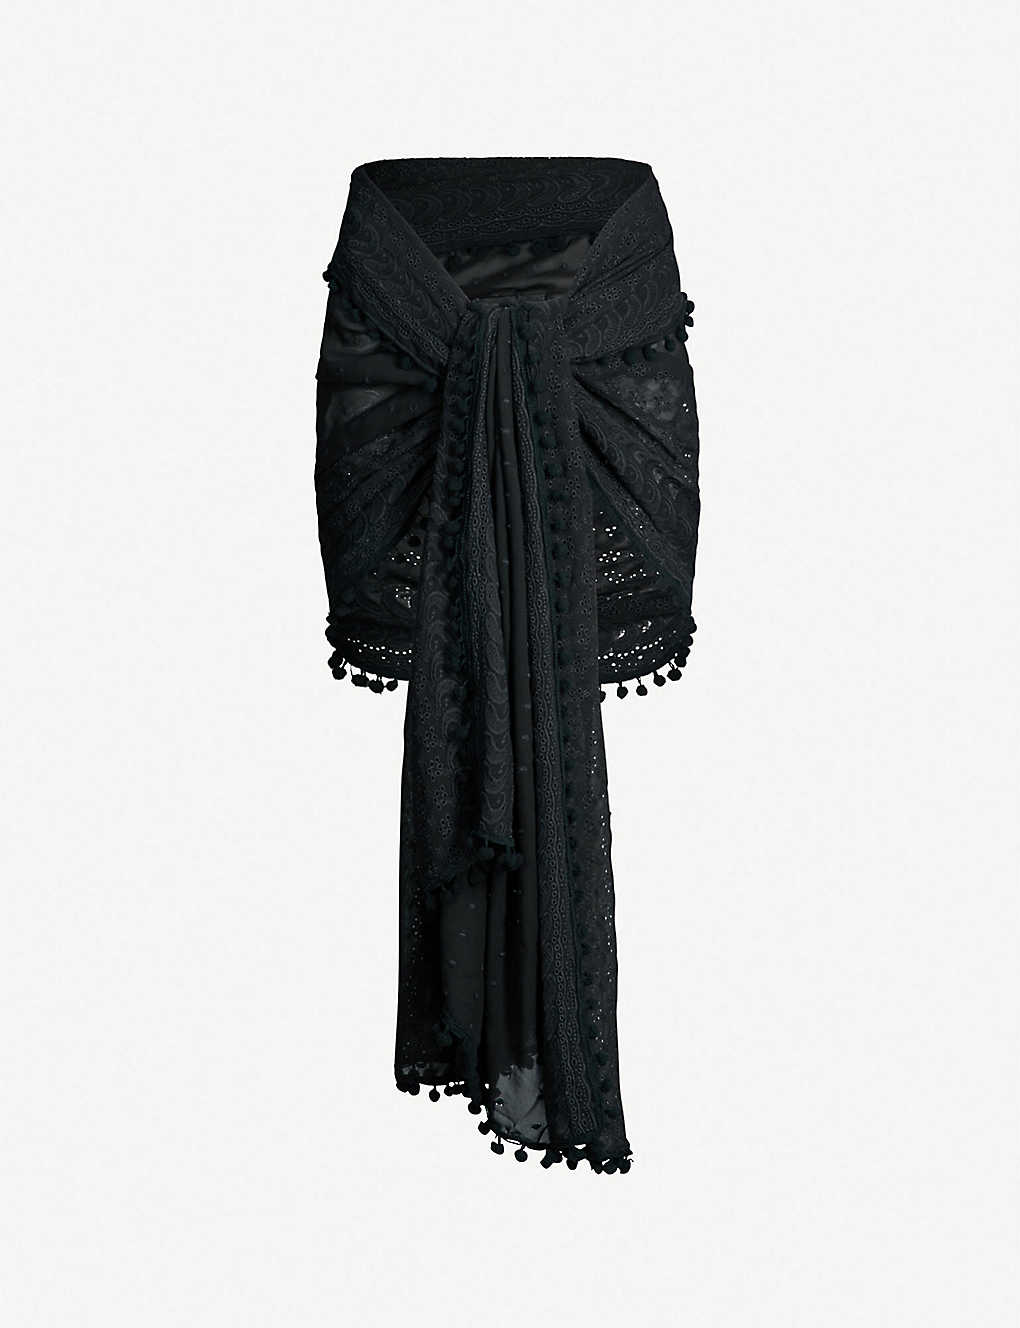 6250bb8c1f314c Pareo embroidered georgette sarong zoom; Pareo embroidered georgette sarong  zoom ...